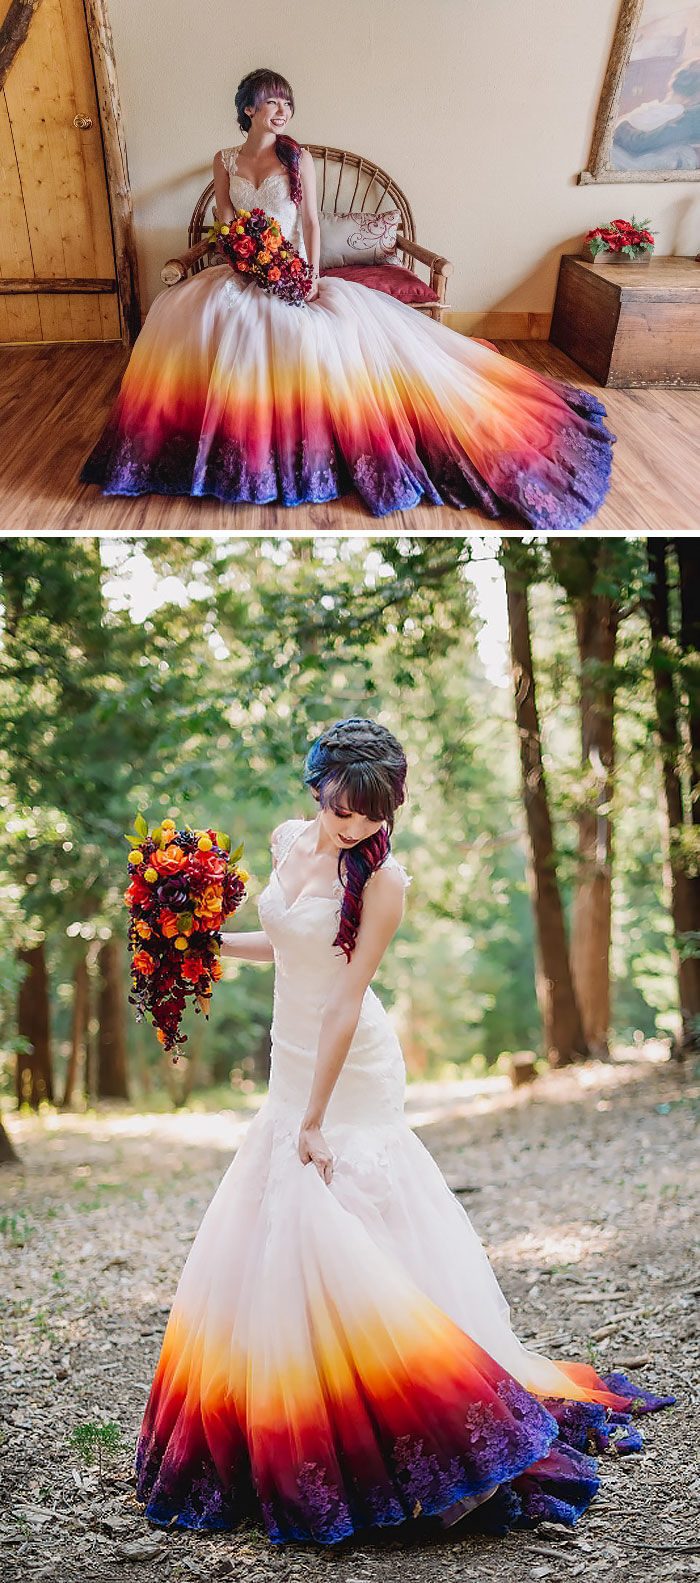 K'Mich Weddings - wedding planning - dyed dresses - bride sitting in a chair in an ombre dress